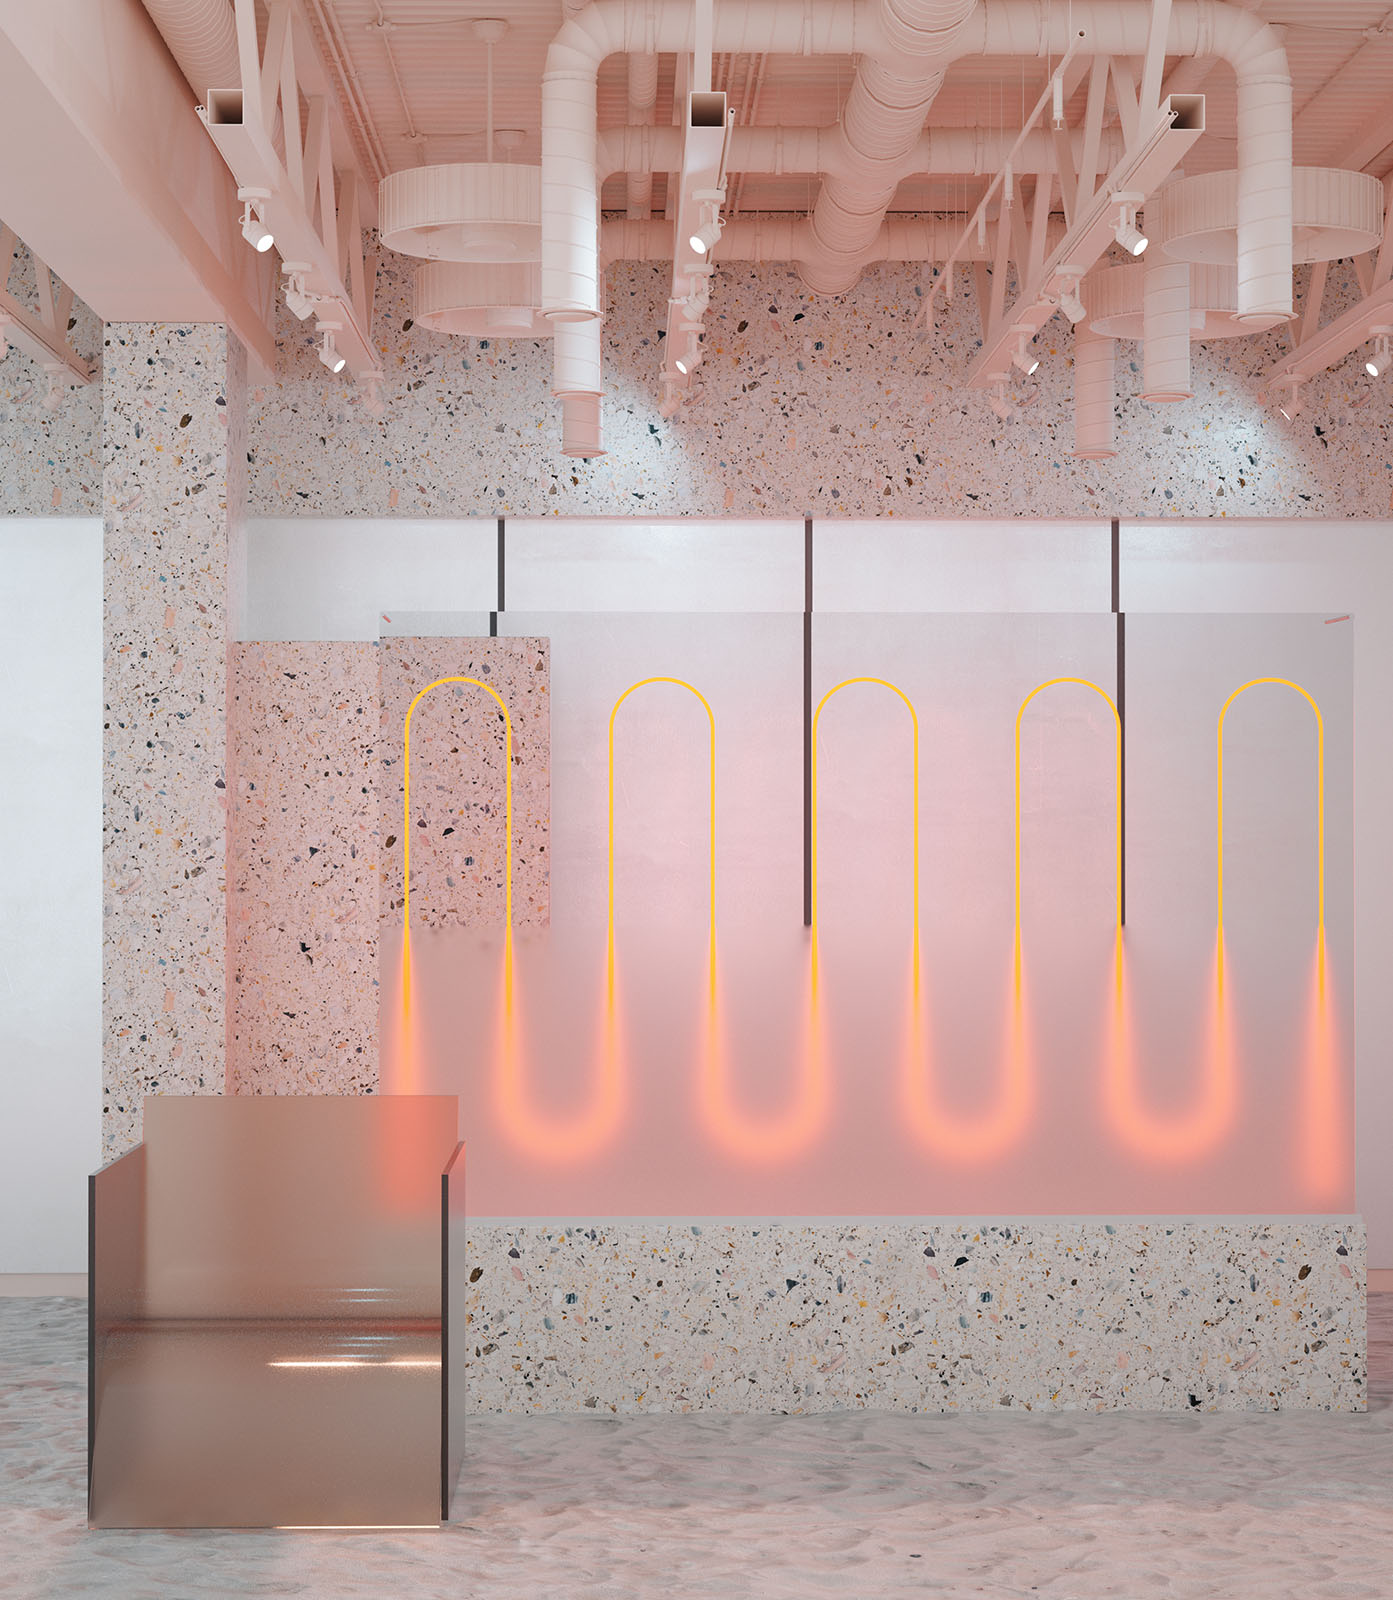 3D-visuals-trends-for-2021-2022-interior-and-exterior-spaces17